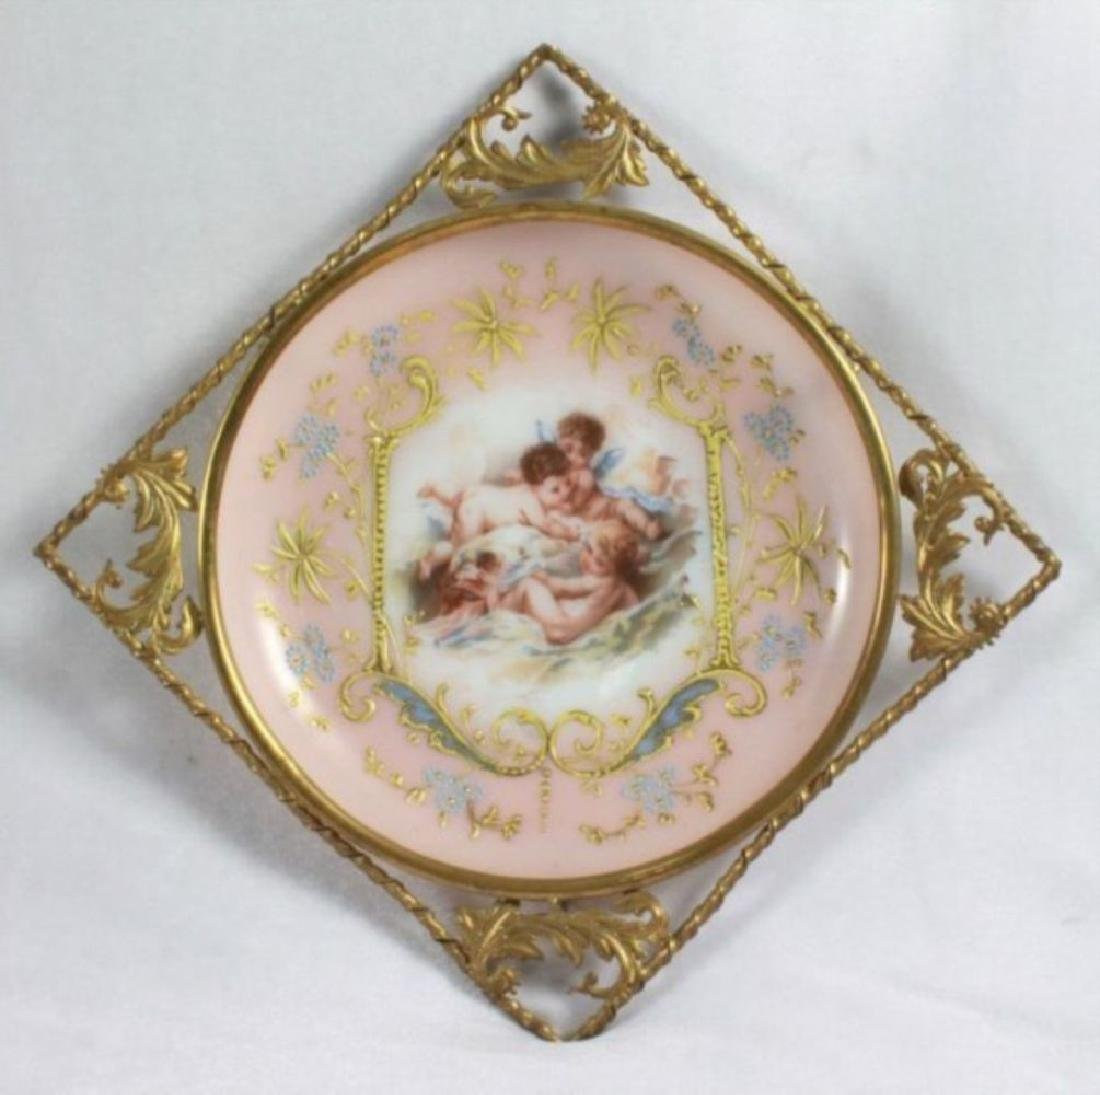 19Th C. Victorian Enameled Porcelain Wall Hangings - 2